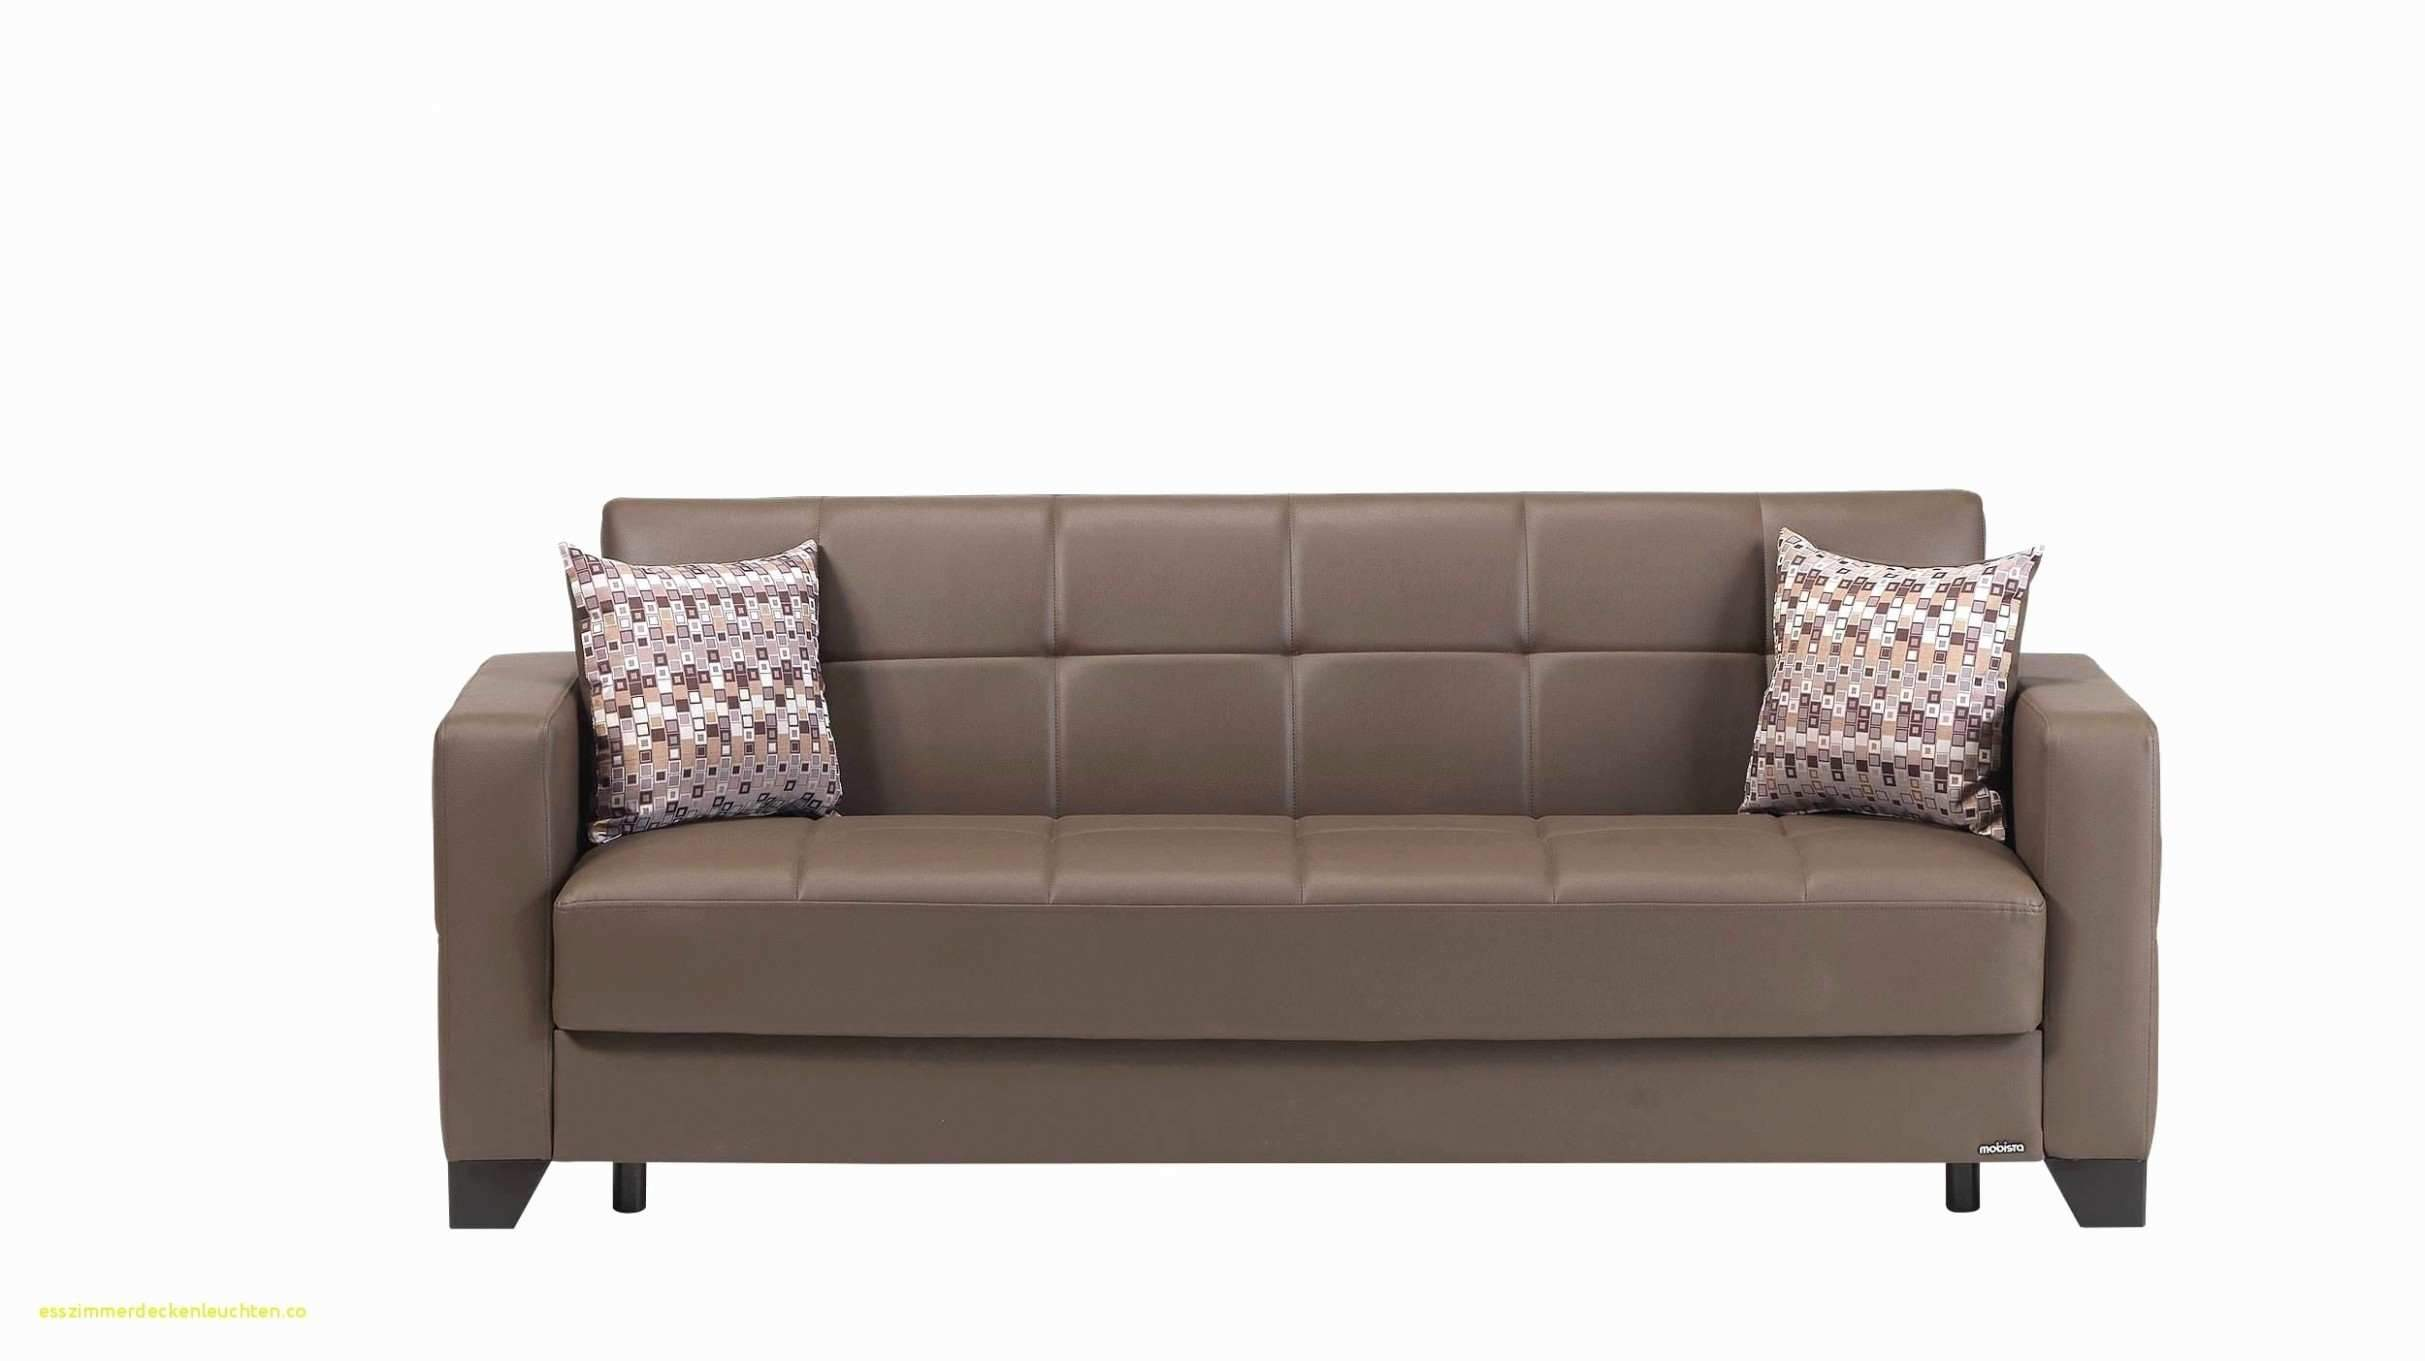 sofa in grau luxus 2 chair patio set elegant wicker outdoor sofa 0d patio of sofa in grau